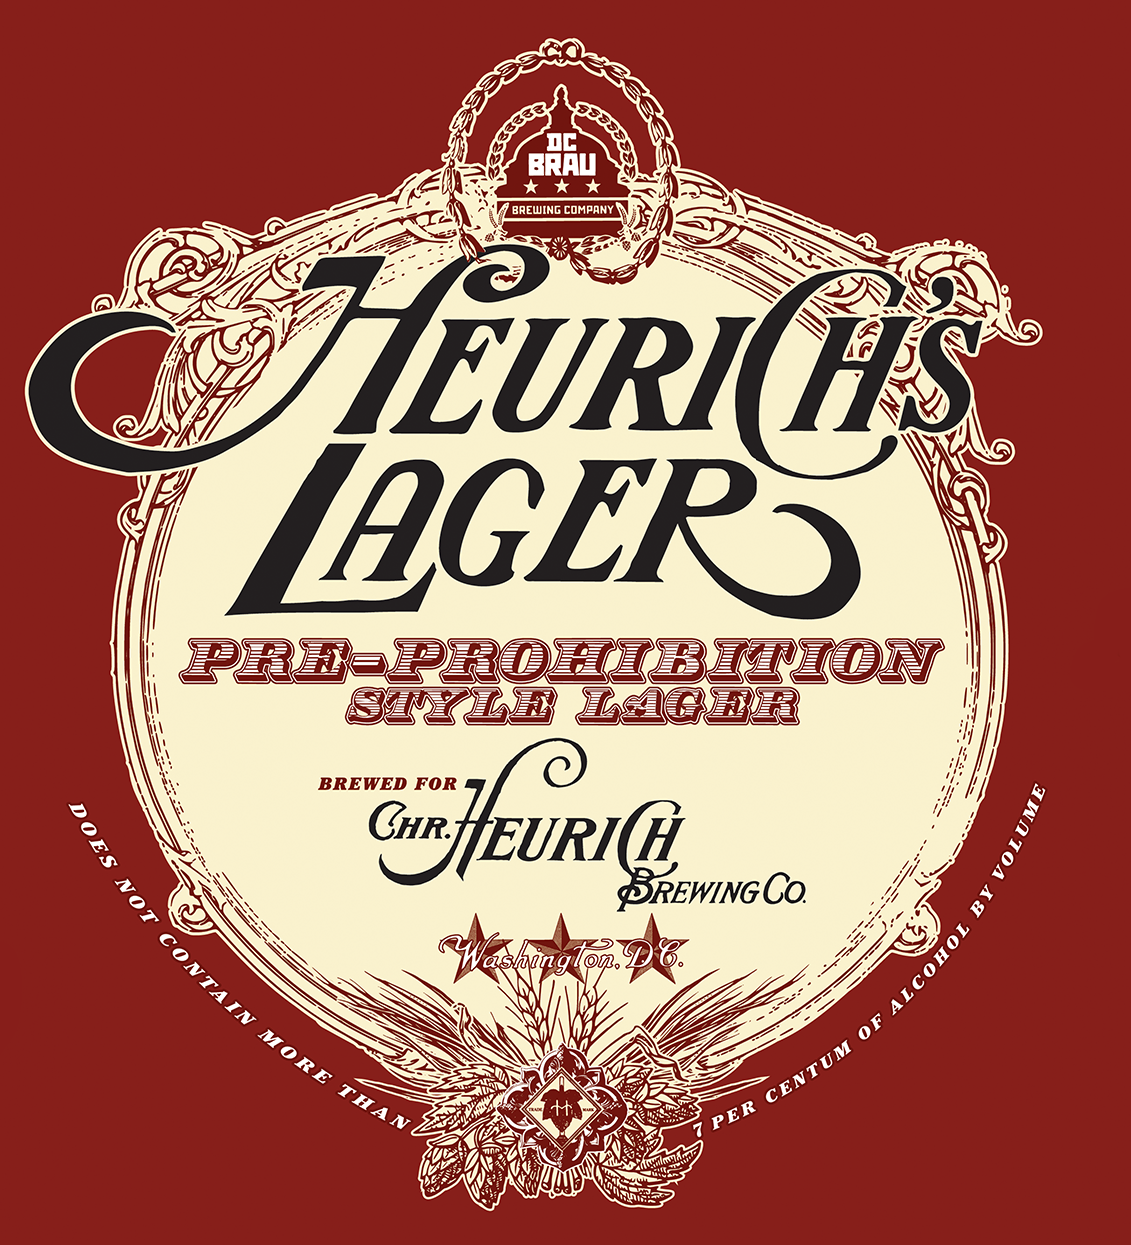 HHM_HeurichsLager_LabelOnly.png